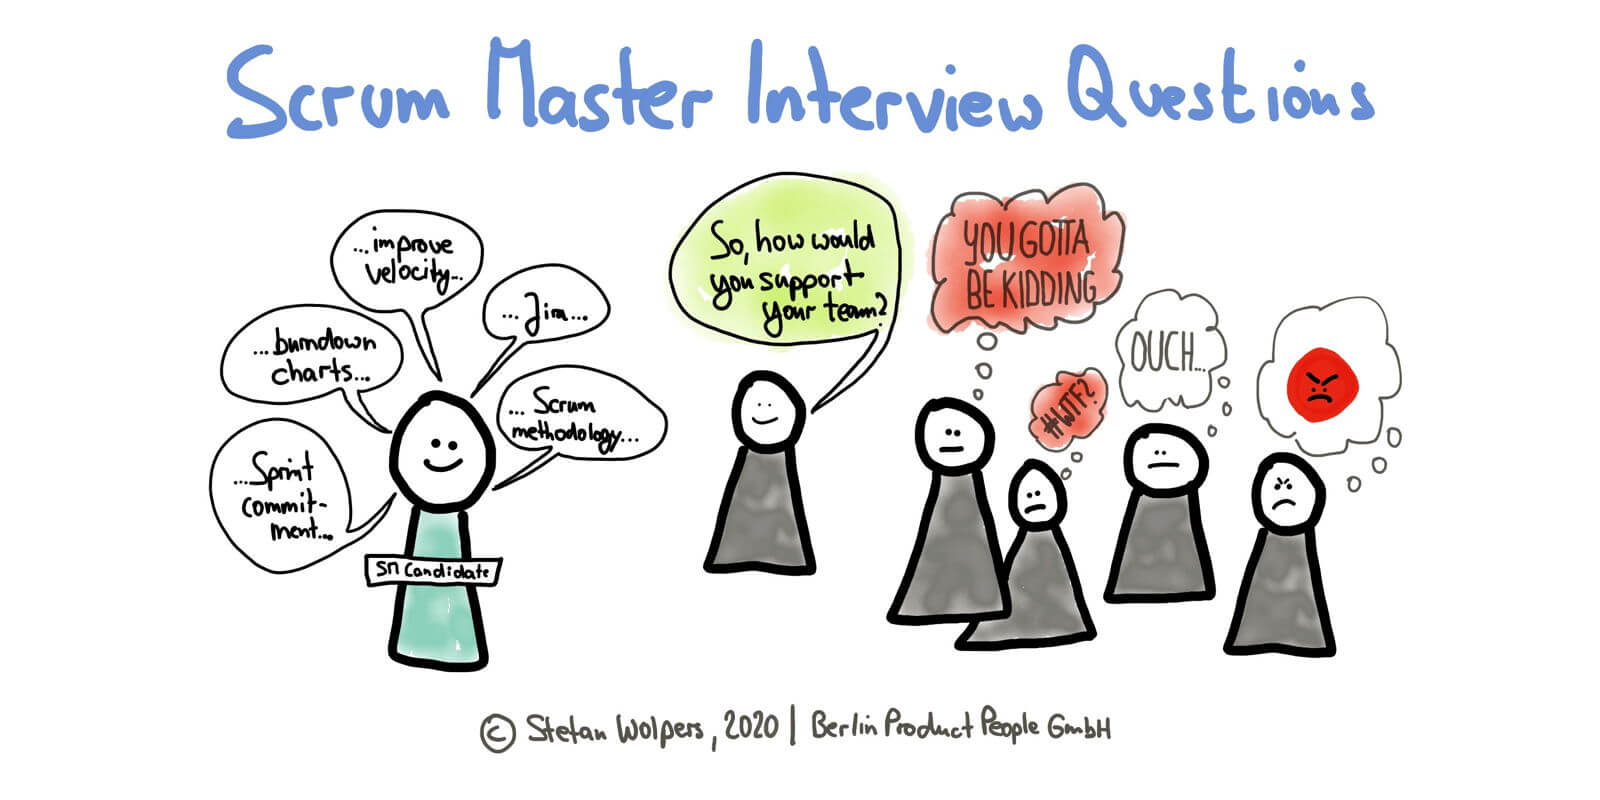 47 Scrum Master Interview Questions to Identify Suitable Candidates — Age-of-Product.com